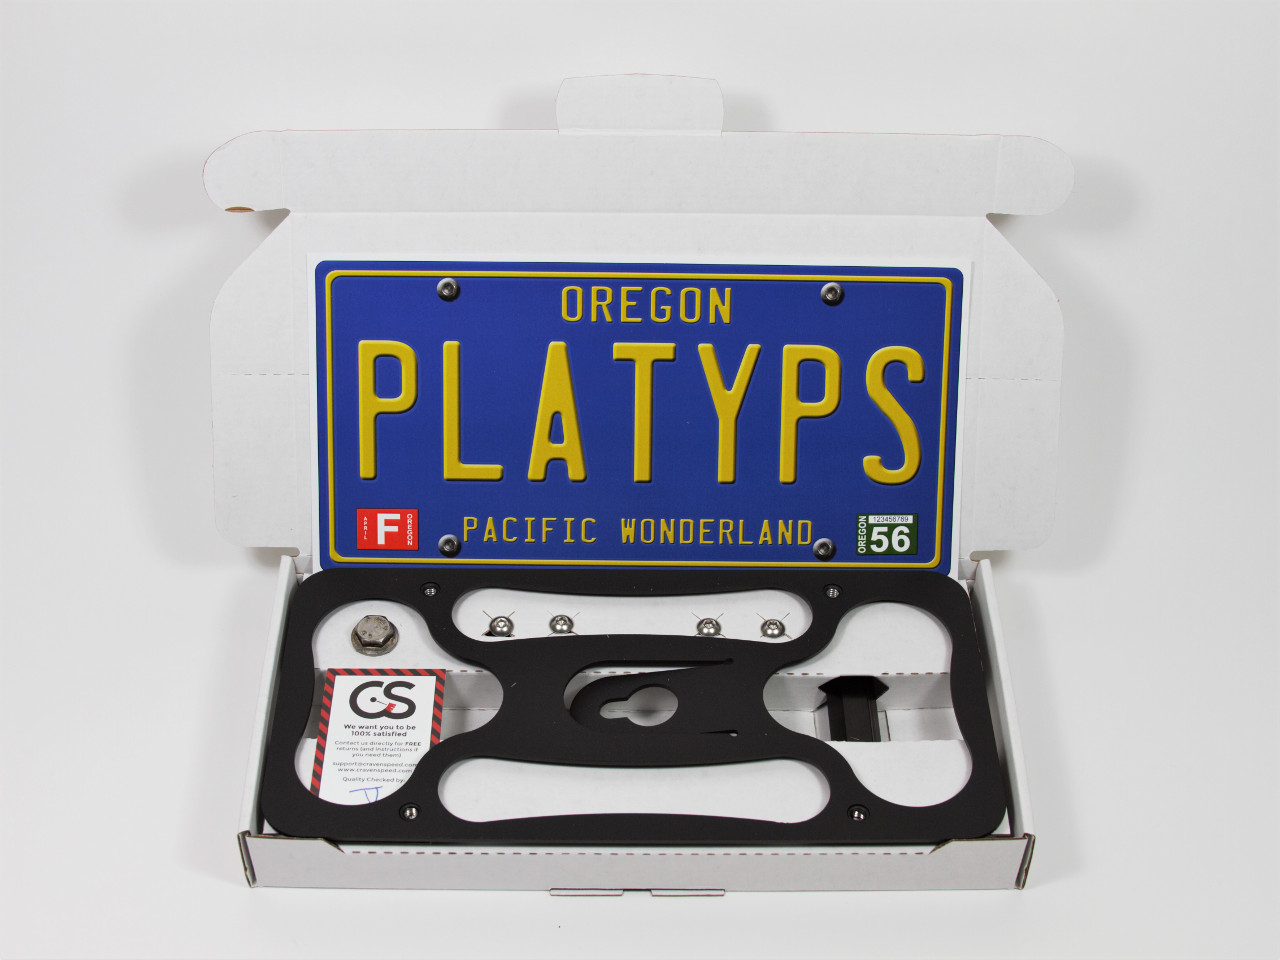 The CravenSpeed Platypus License Plate mount in it's box.